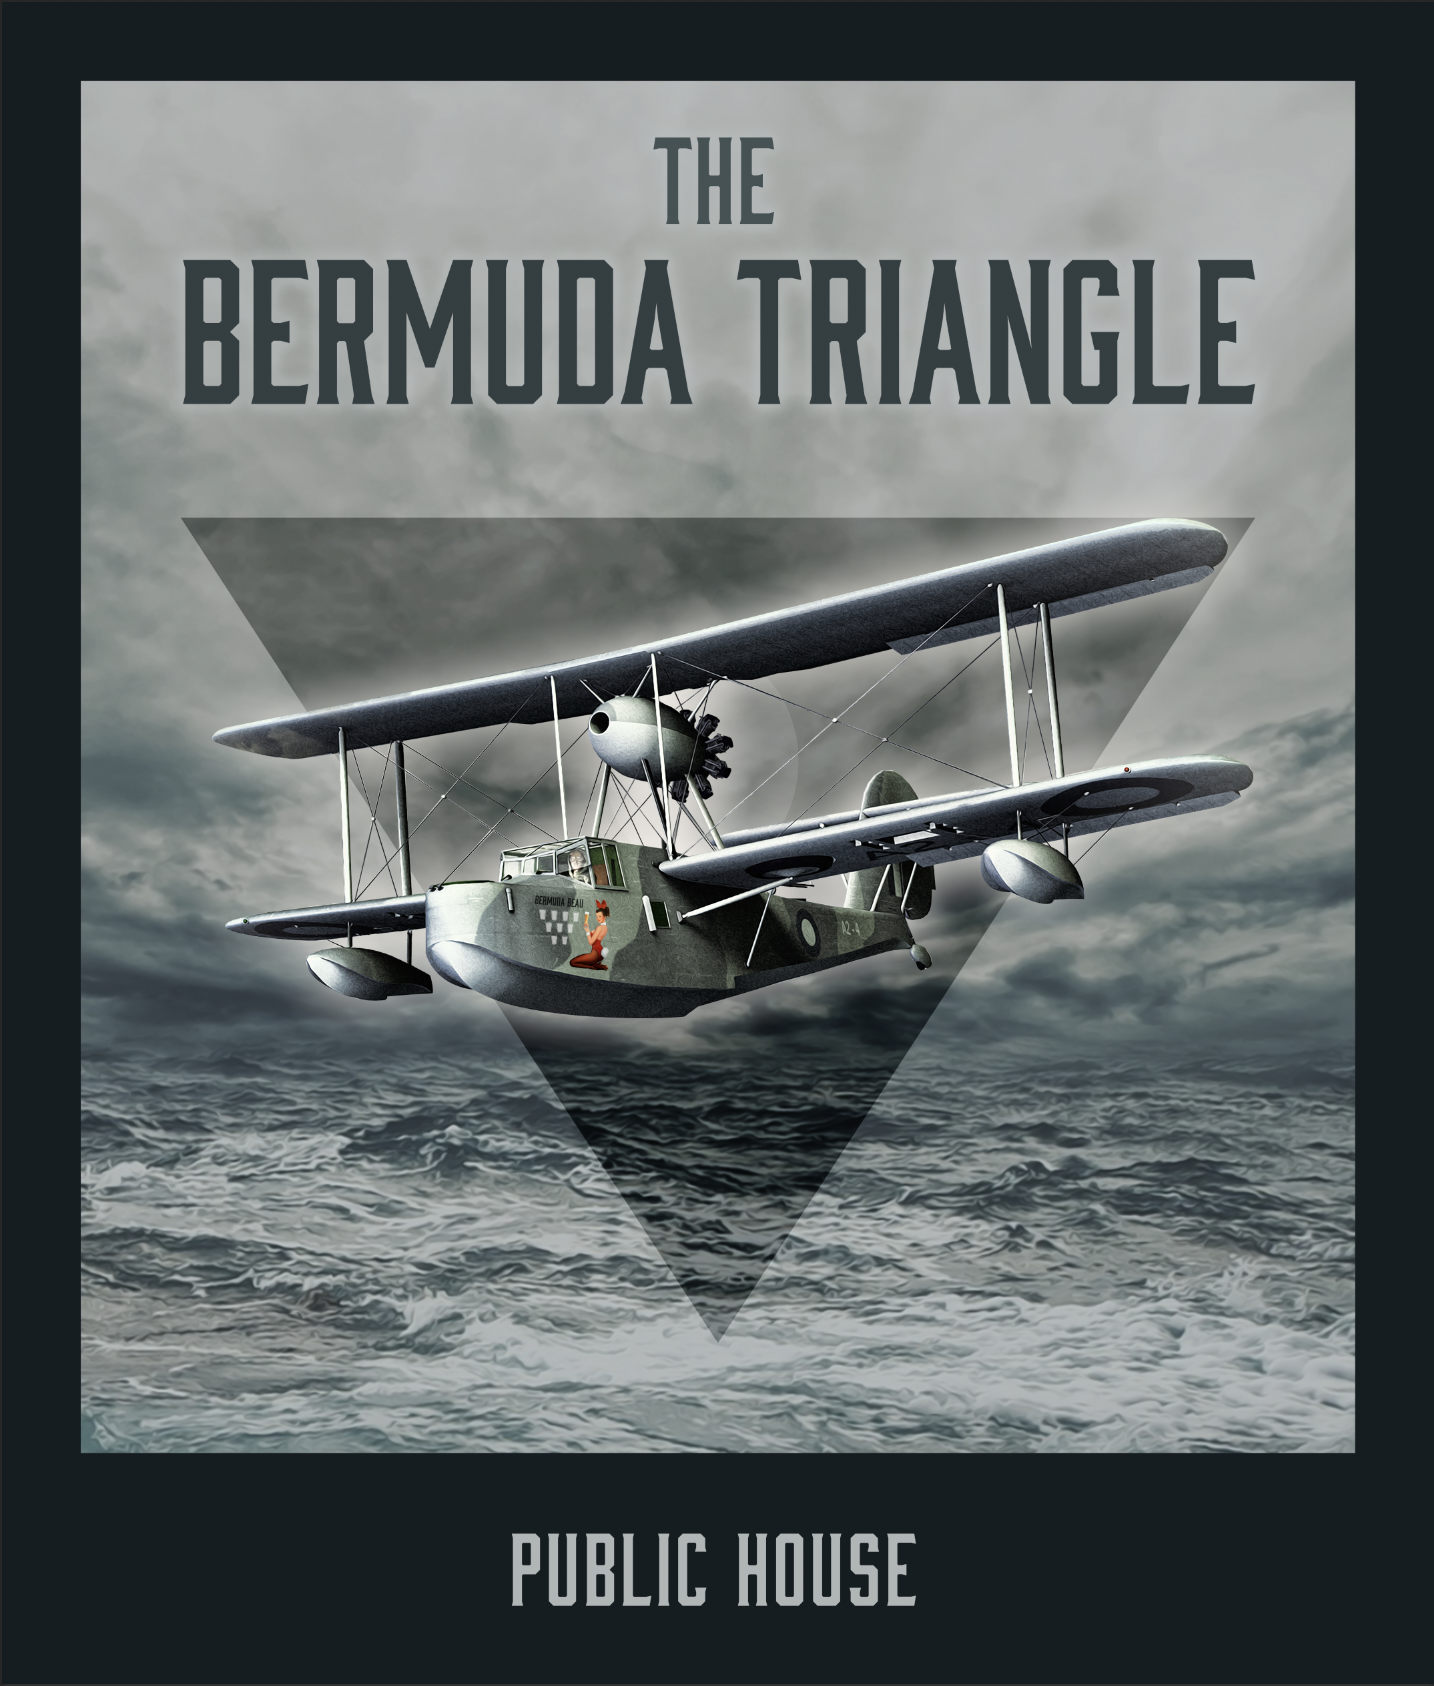 Here's the new pub sign for the Bermuda Triangle, with Captain AG in the cock pit and Bermuda Beau delivering the fine ales